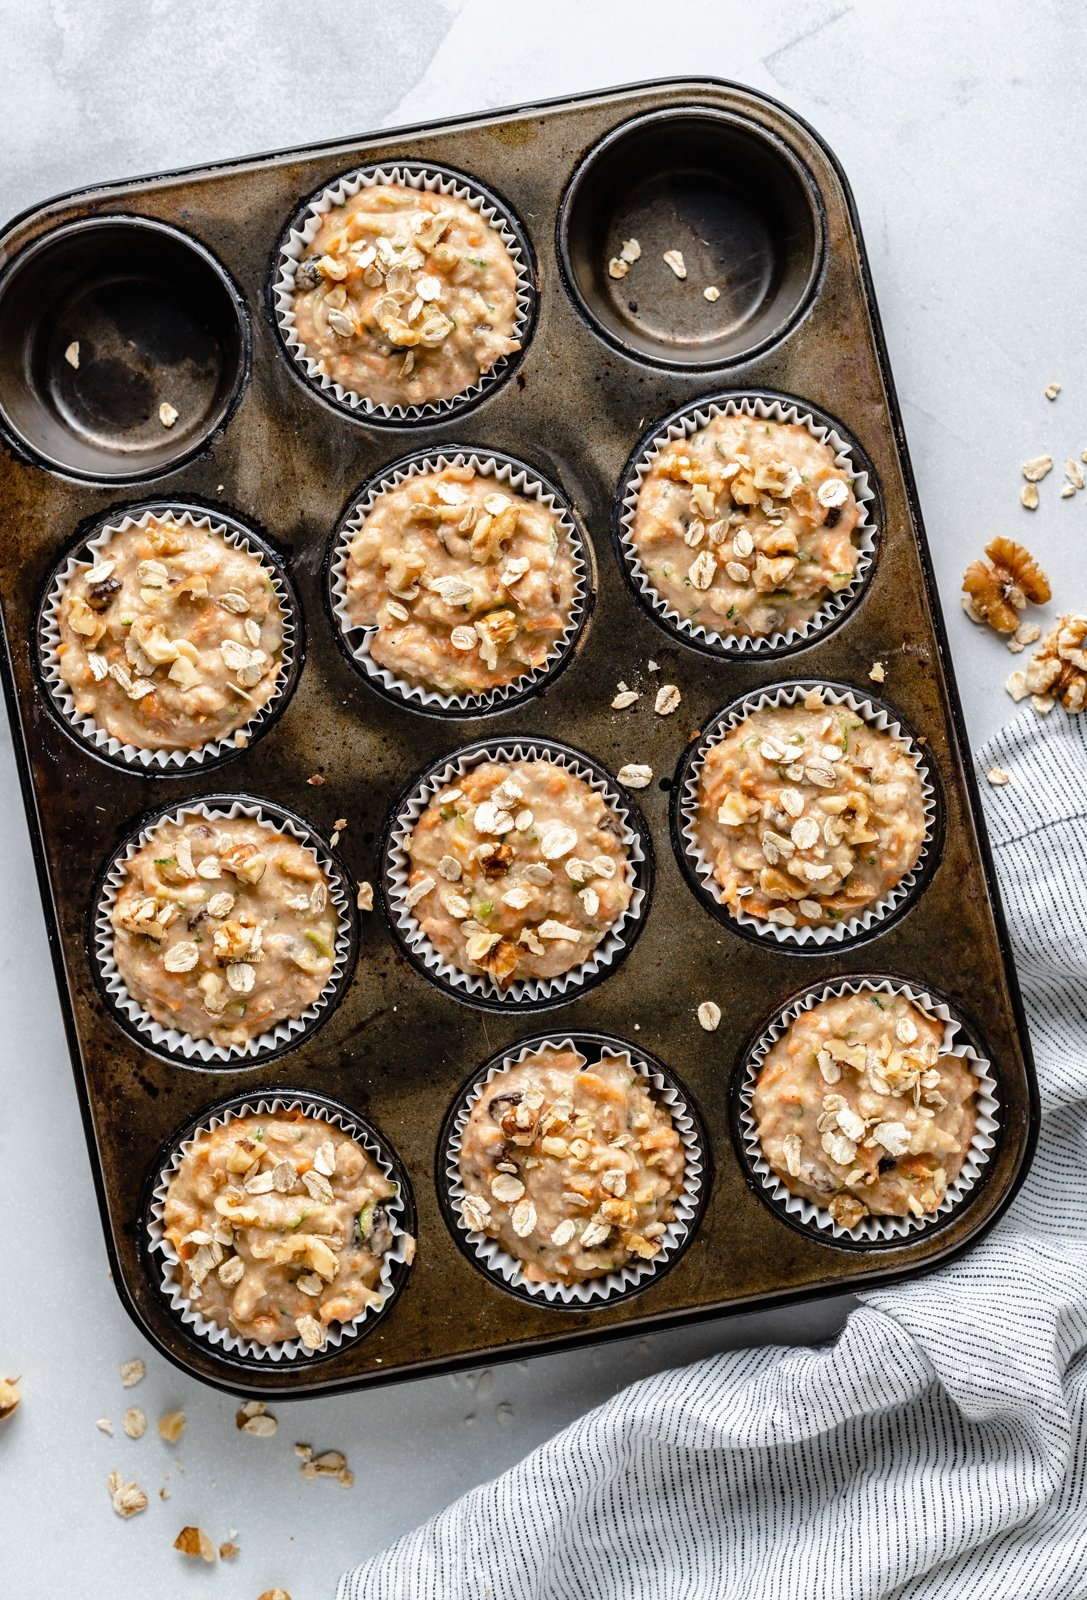 unbaked zucchini carrot muffins in a muffin tin